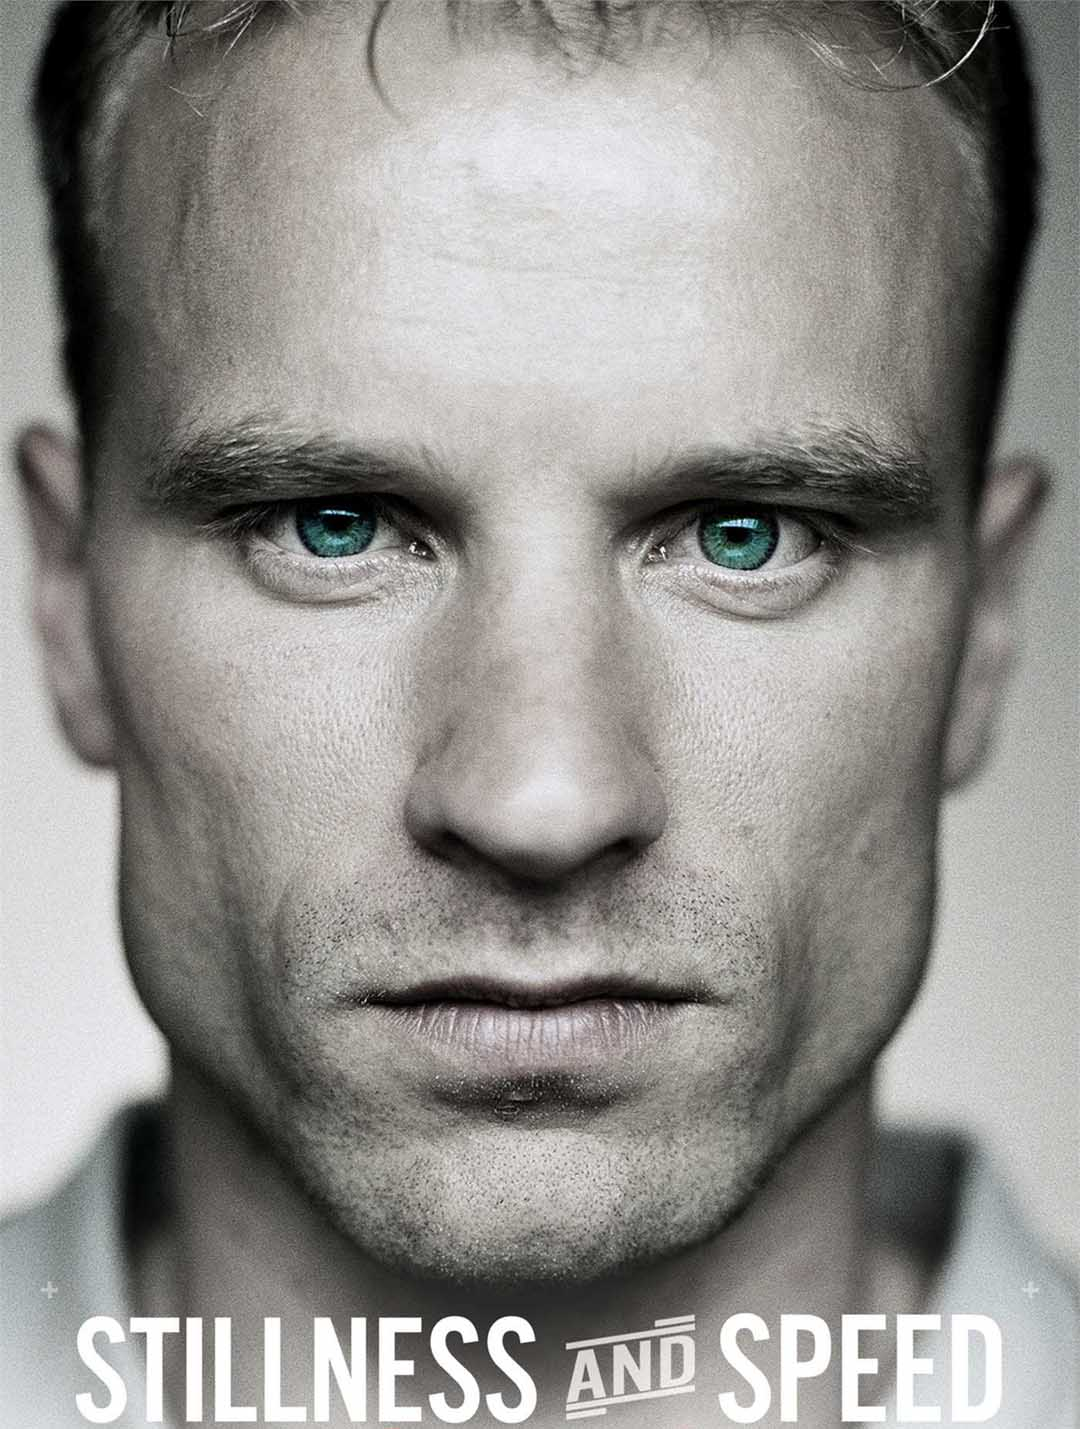 'The Iceman', Dennis Bergkamp. White Walker would have been a good nickname too!